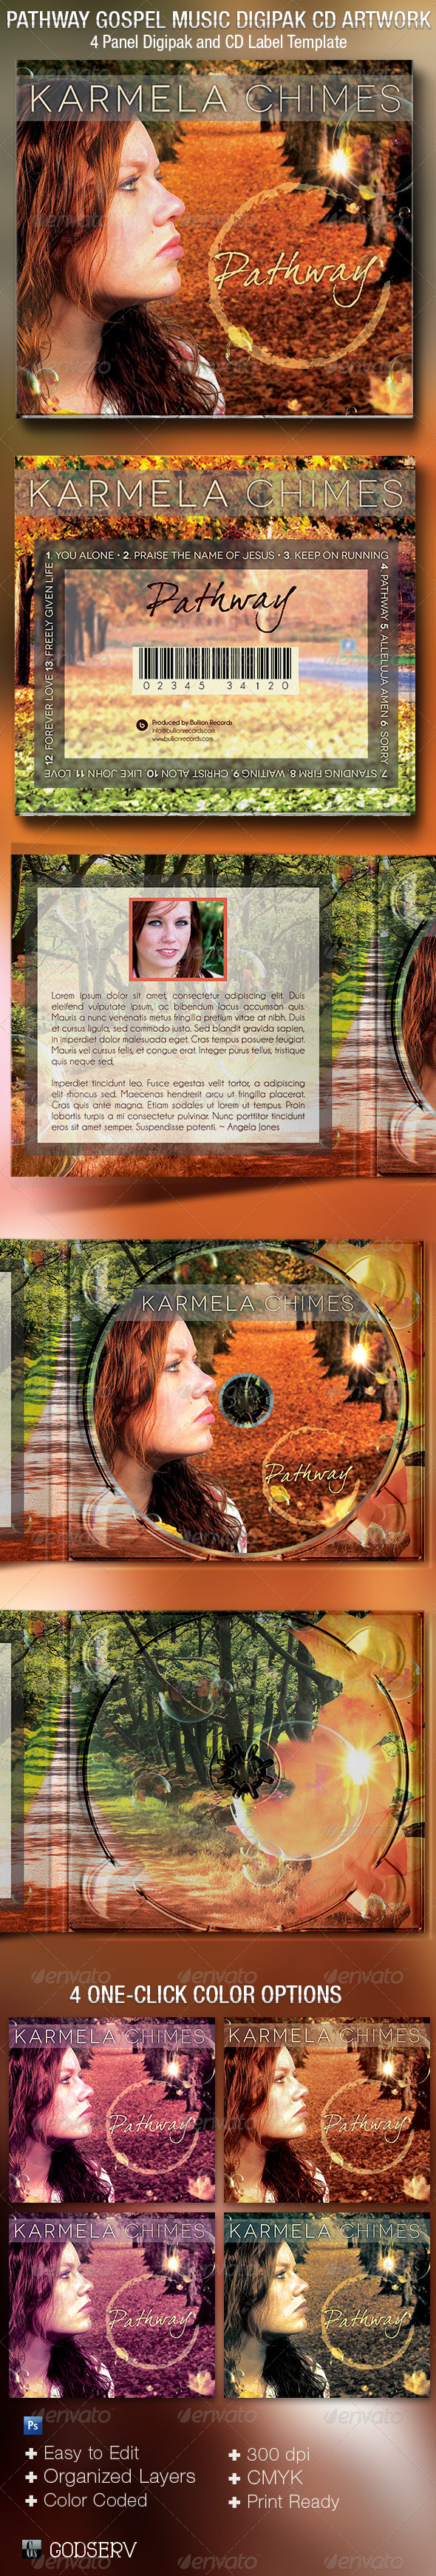 Pathway Gospel Music 4 Panel Digipak CD Template - CD & DVD artwork Print Templates